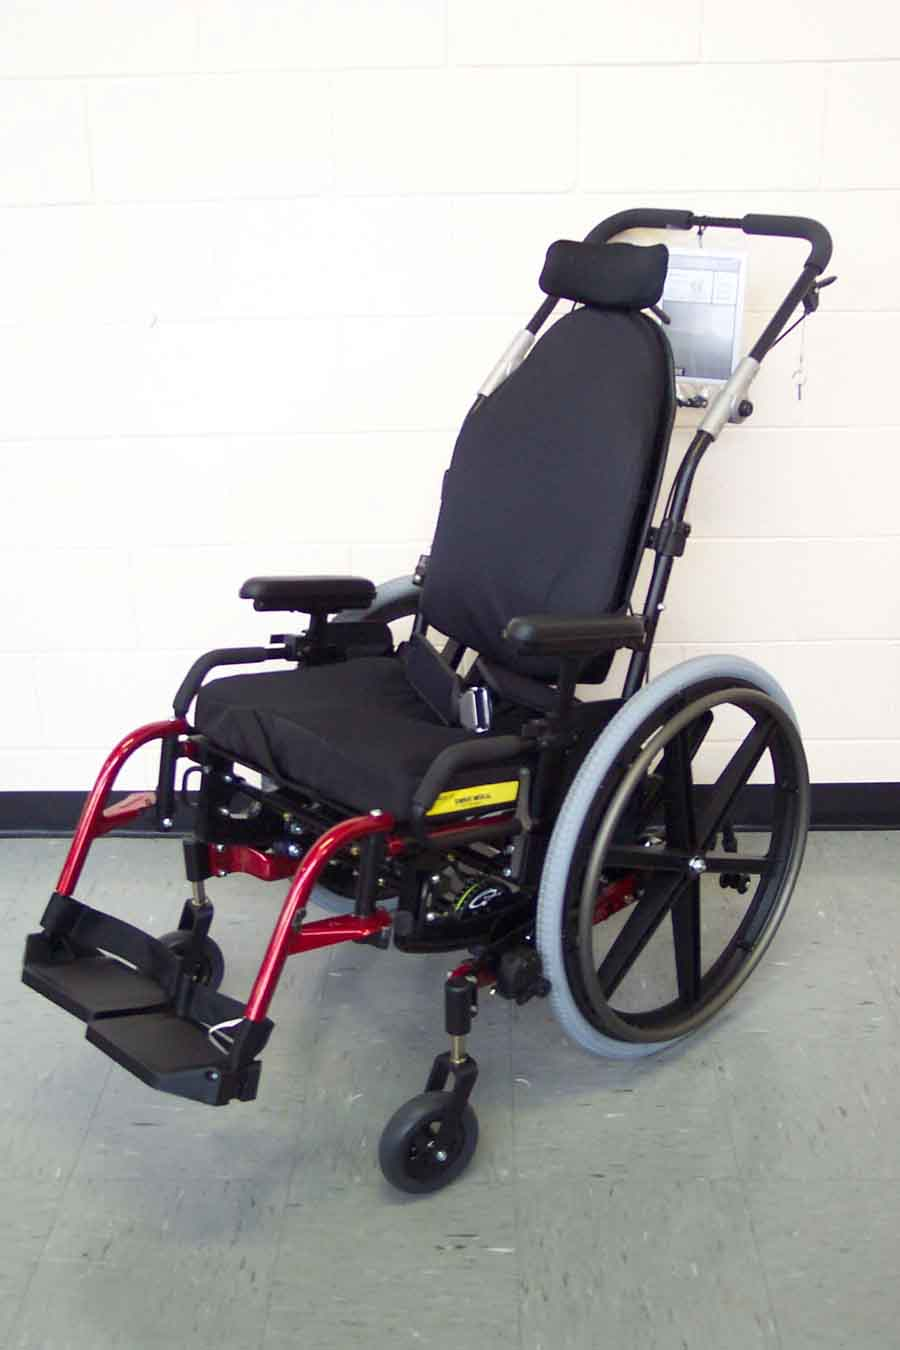 manual wheelchairs vs motor scooter, manual sports wheelchair, replacement arm rest for manual wheelchair, information on manual wheelchairs